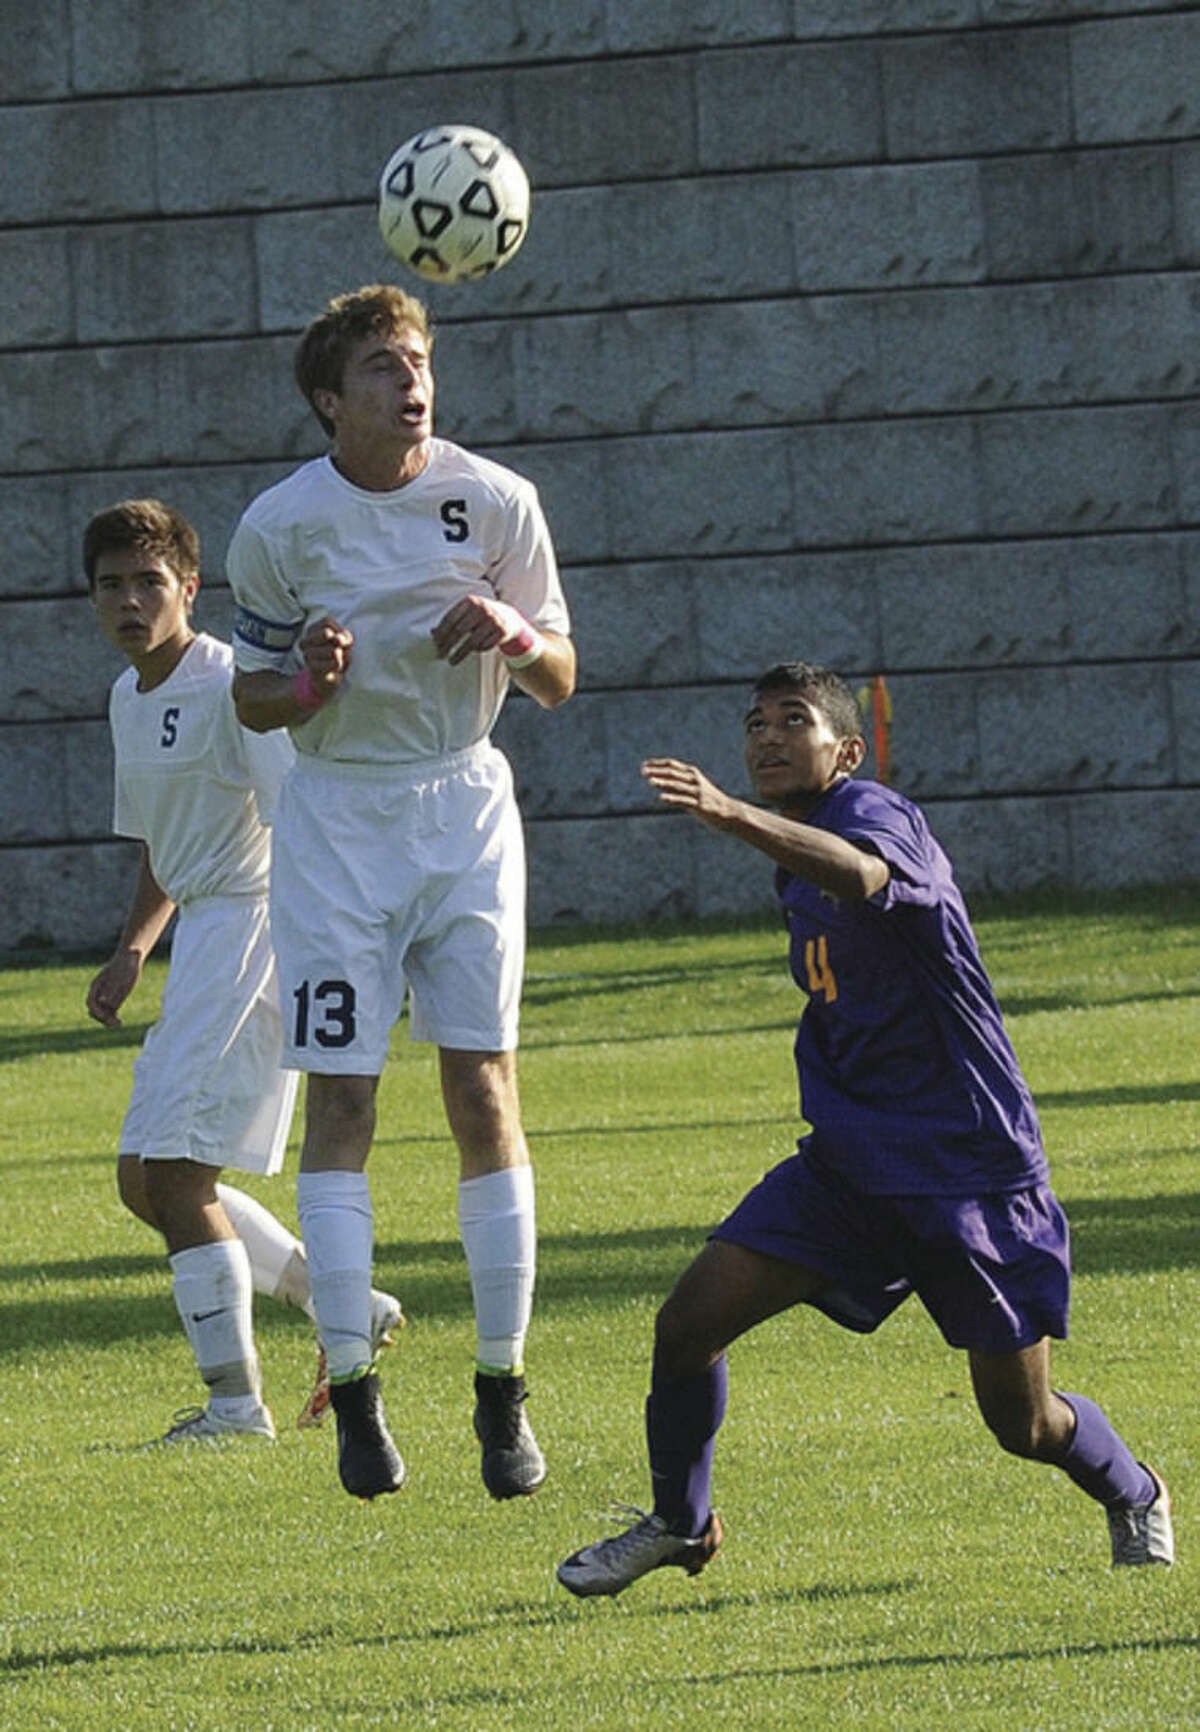 Hour photo/Matthew Vinci Staples Patrick Beusse jumps to head a ball over Westhill's Jose Vargas during Monday's game.